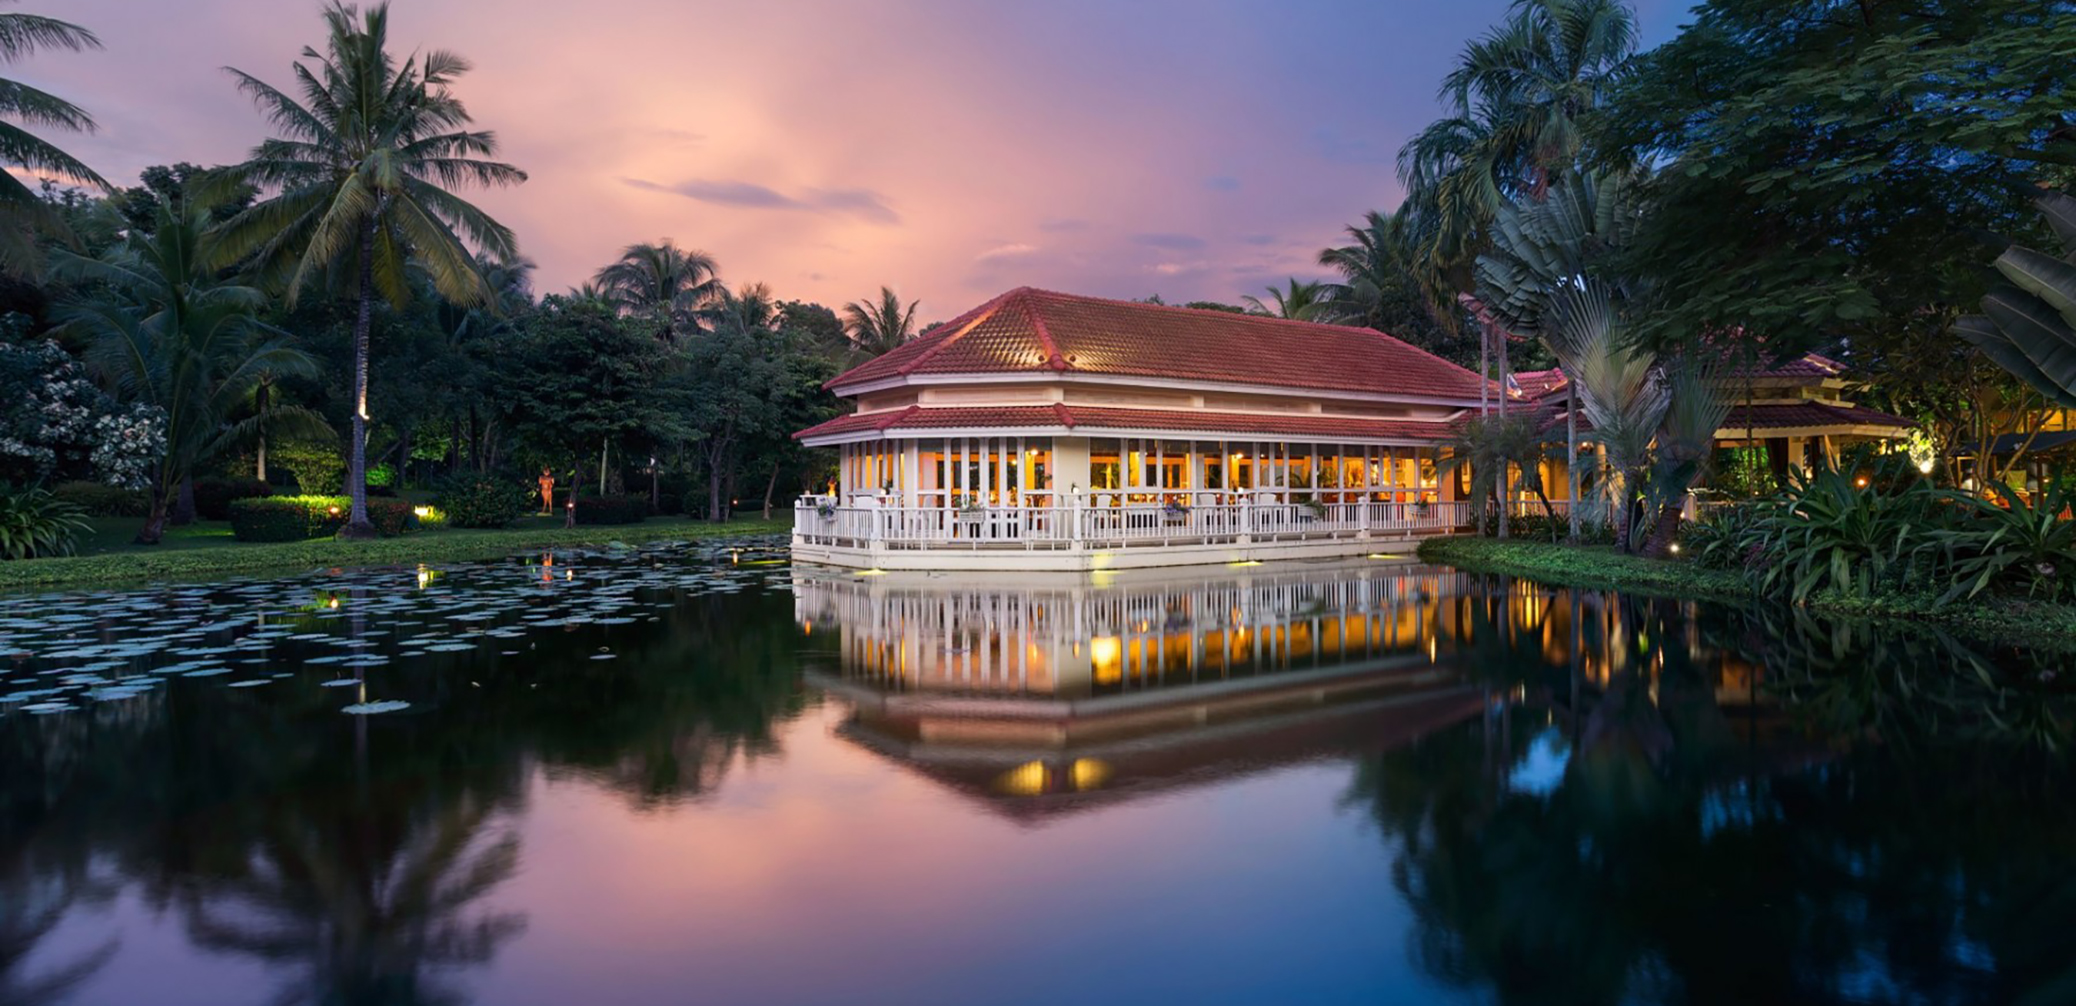 Best Hotel & Airport Executive Club Lounges In Siem Reap, Cambodia